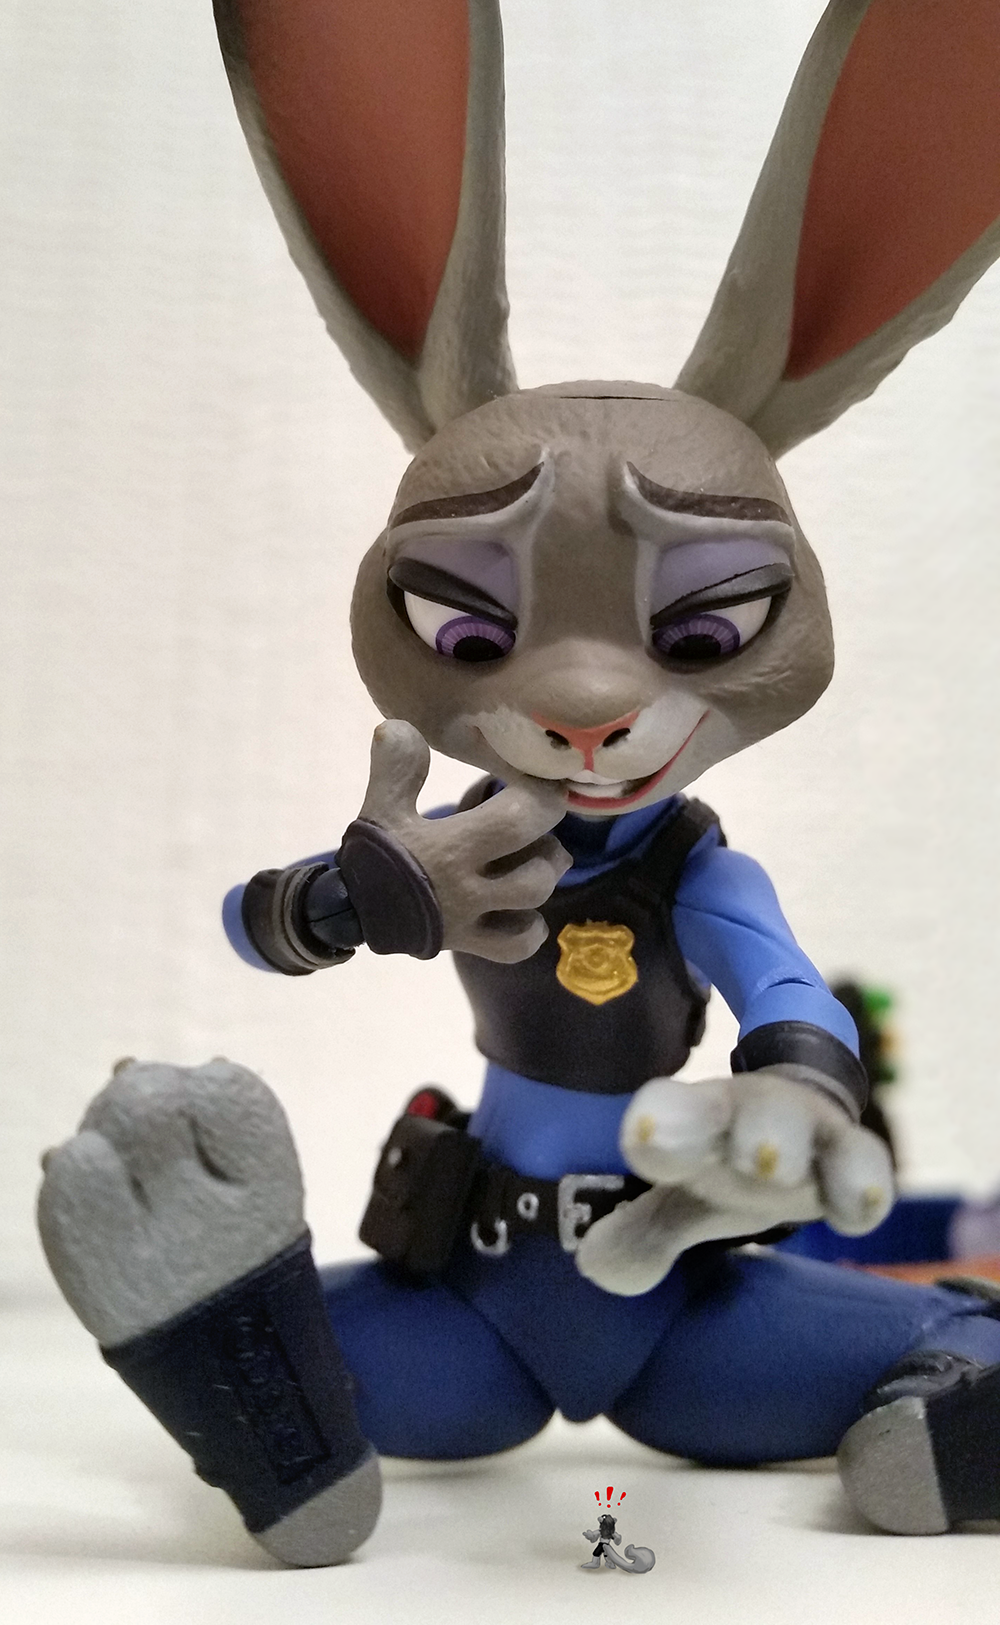 That Judy toy